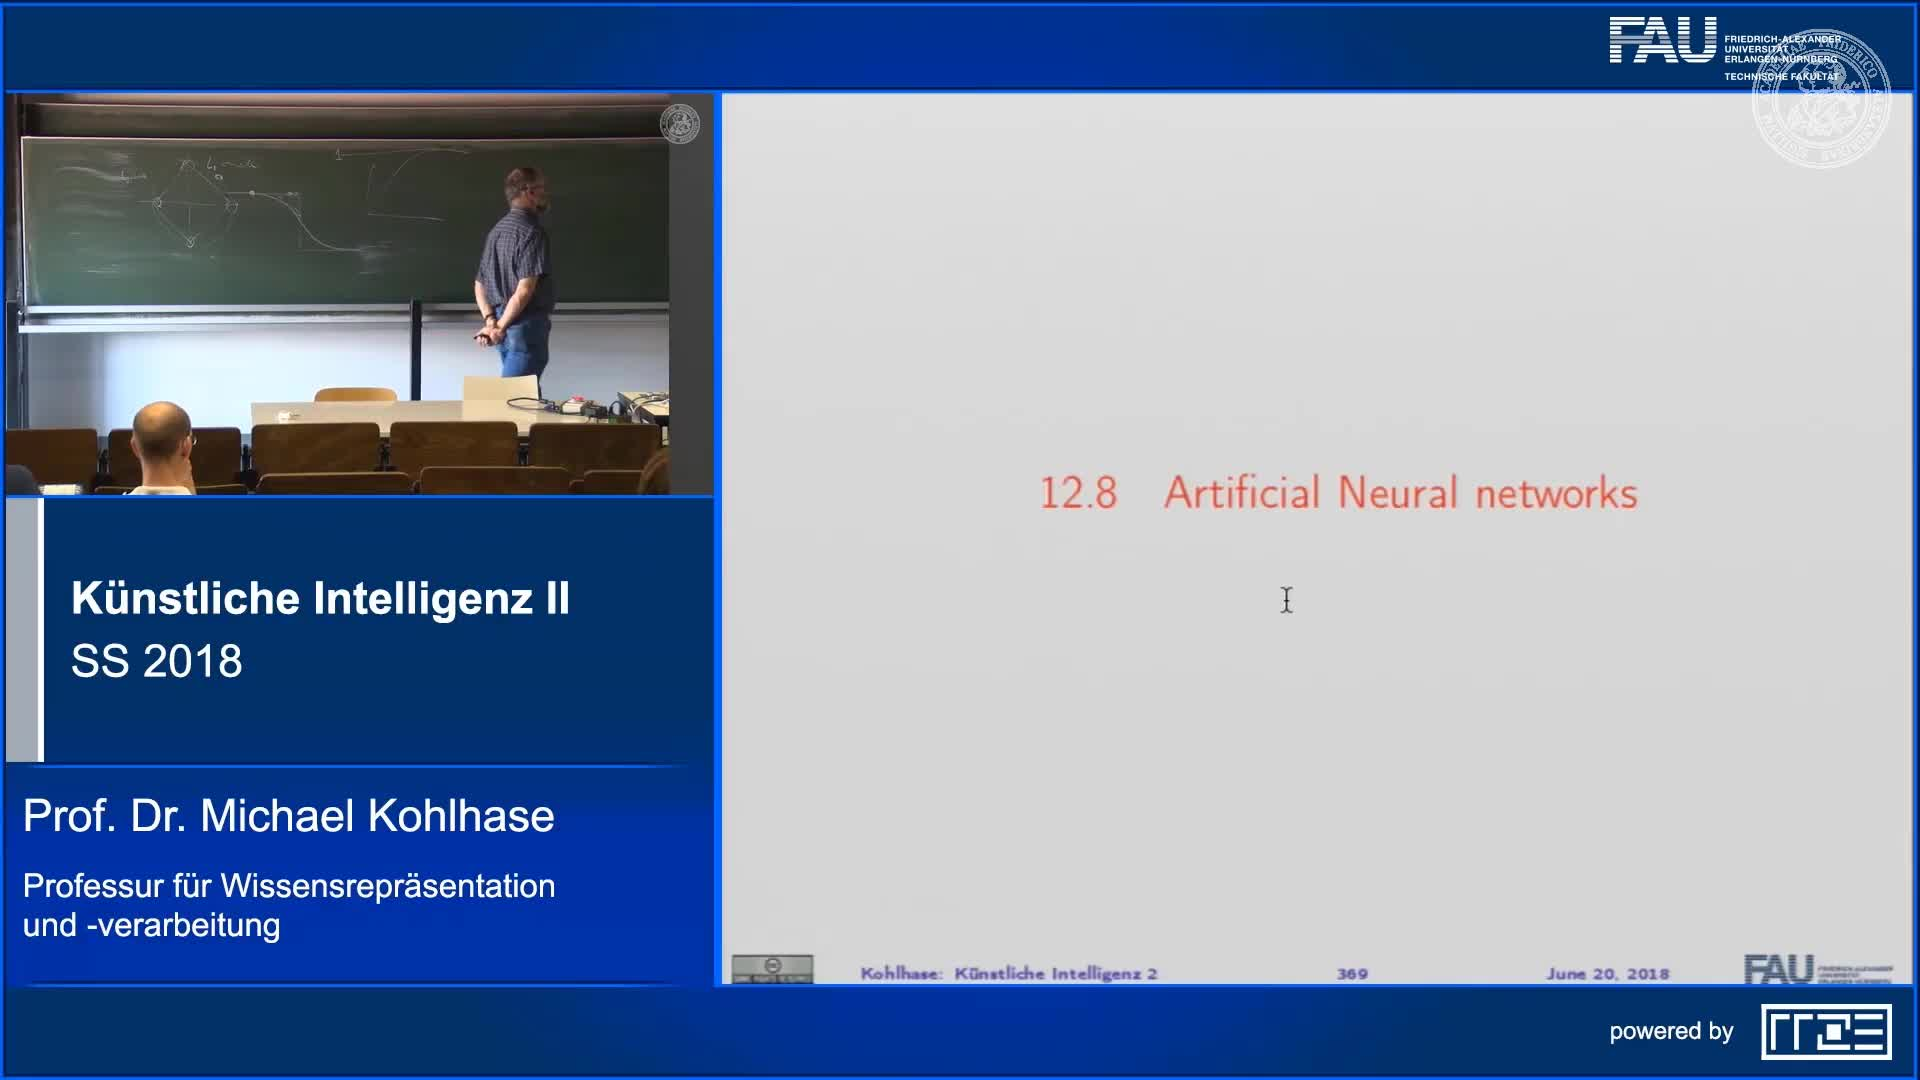 25.8. Artificial Neural Networks (Part 1) preview image